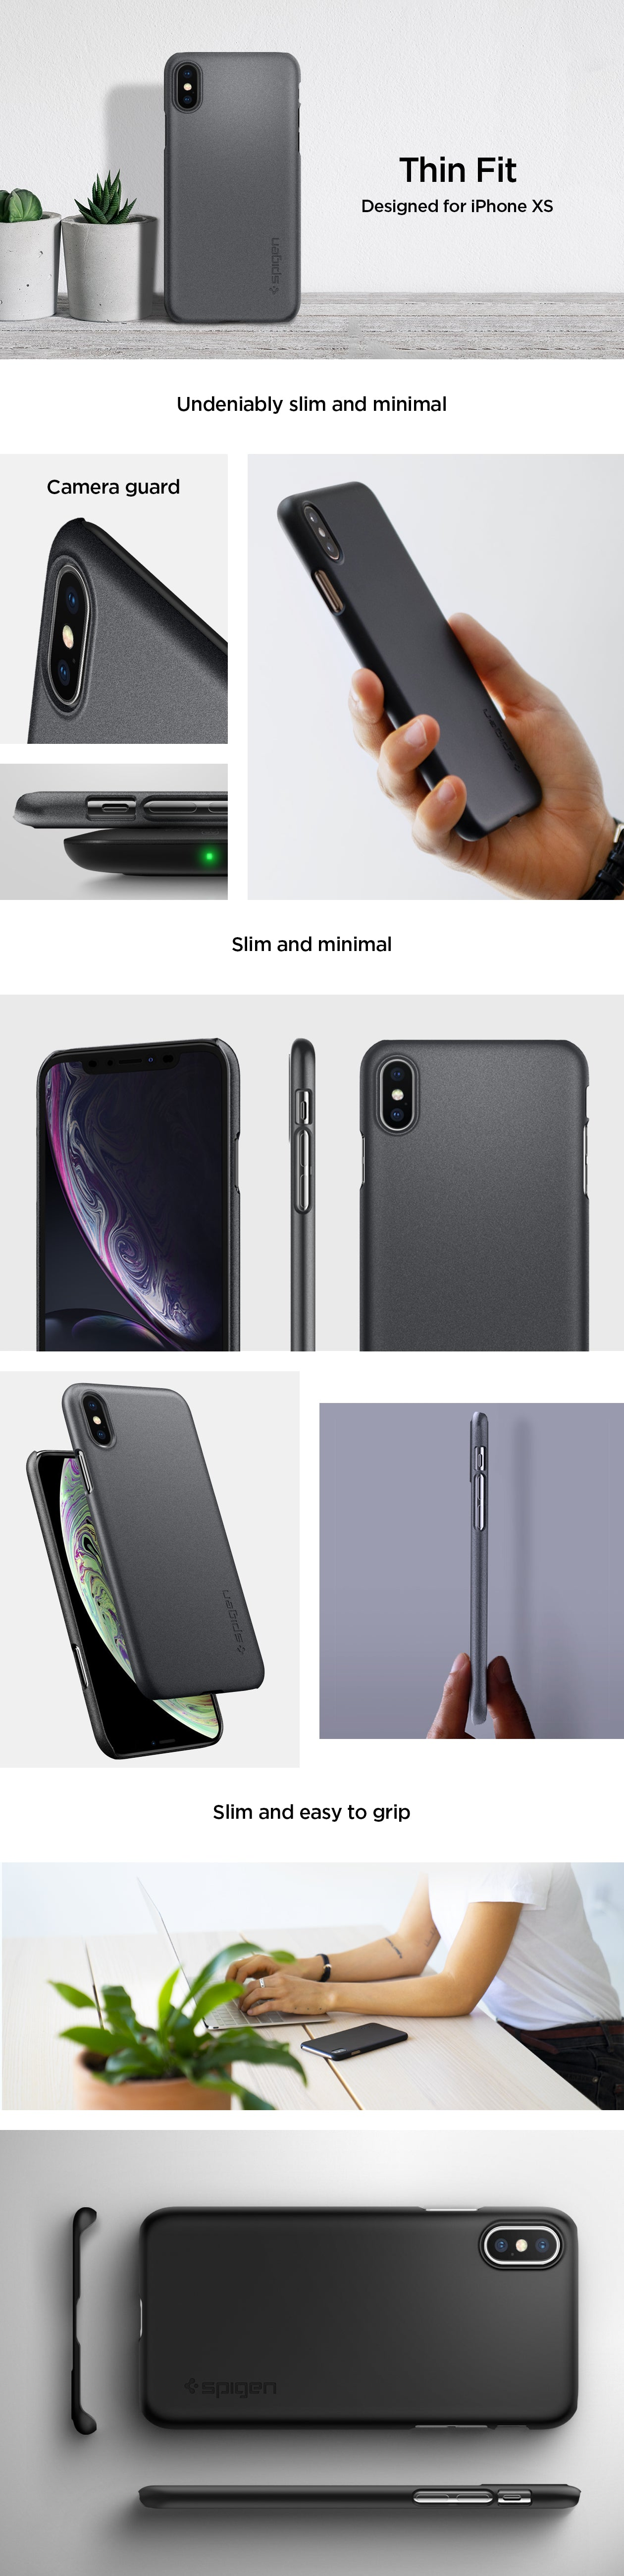 iphone xs case thin fit